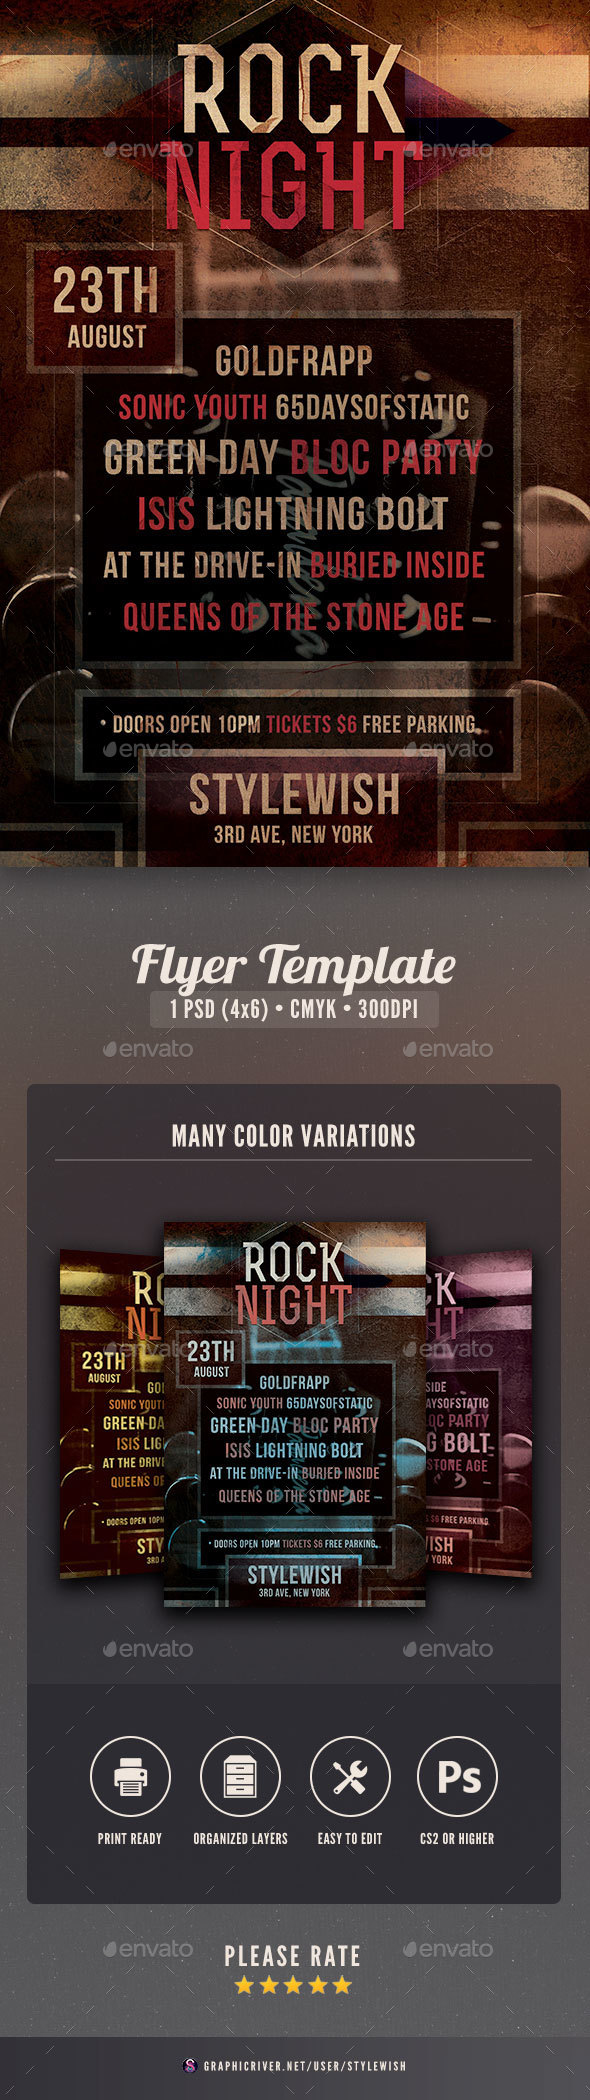 Rock Night Flyer - Concerts Events